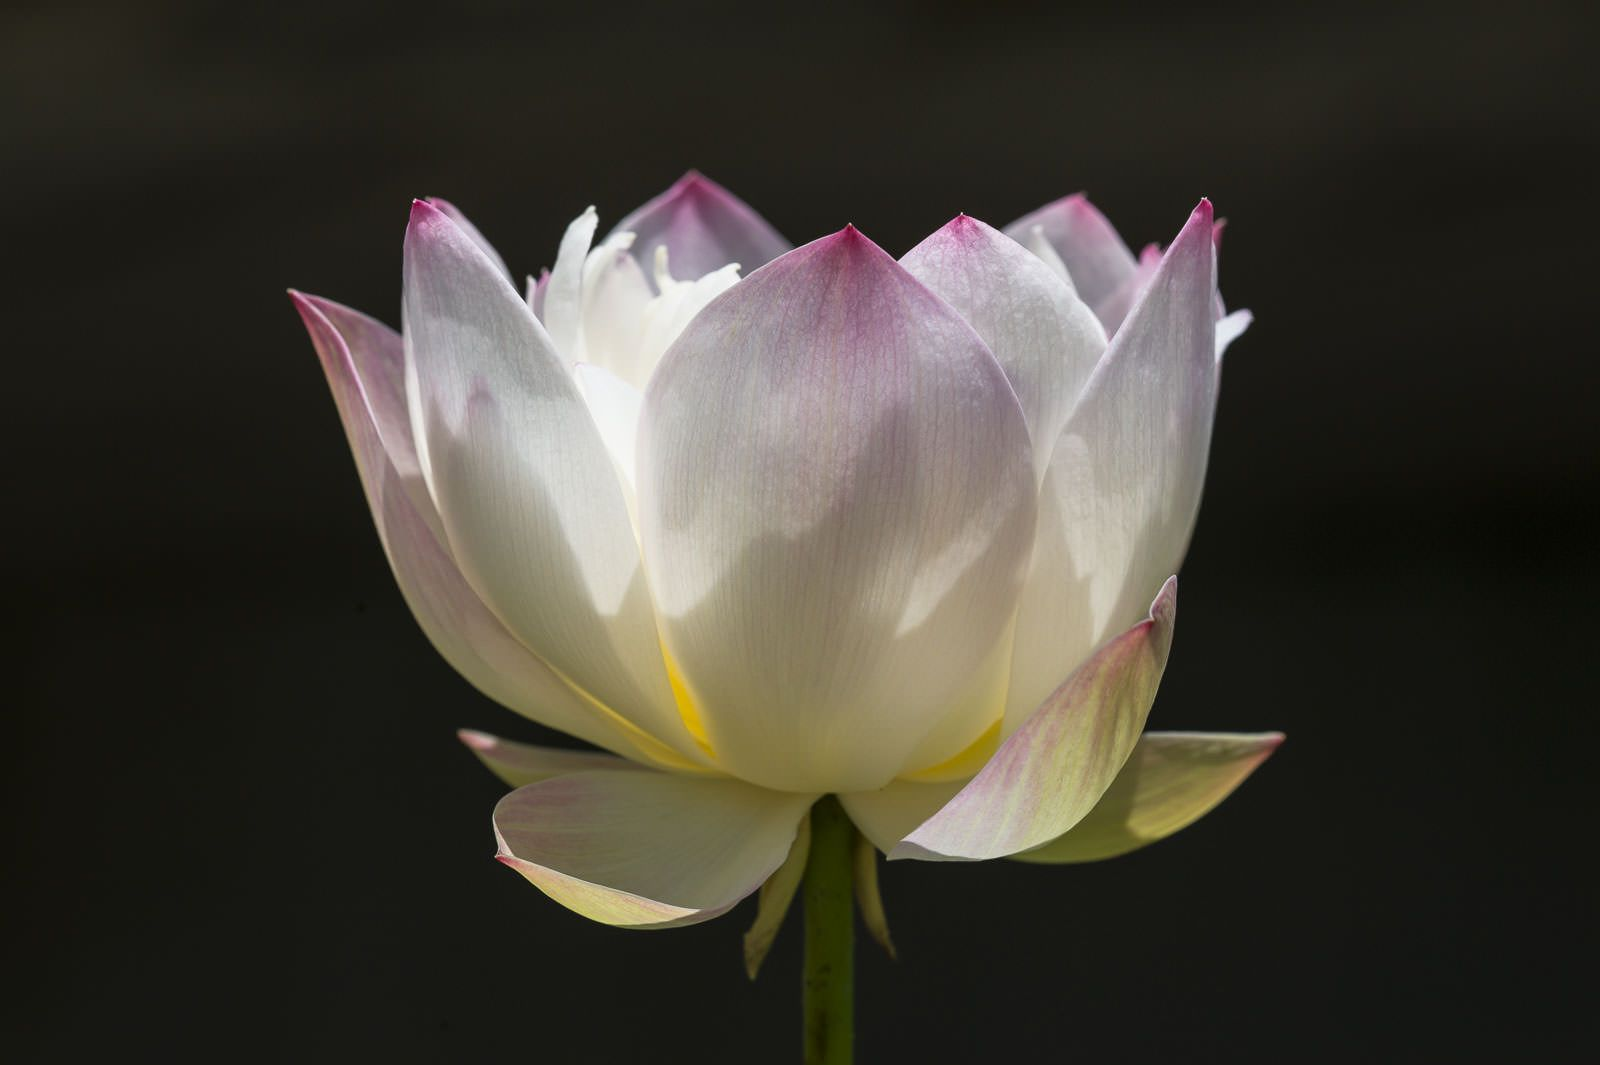 White Lotus Same Flower As In The Other Photo Lotuses Pinterest